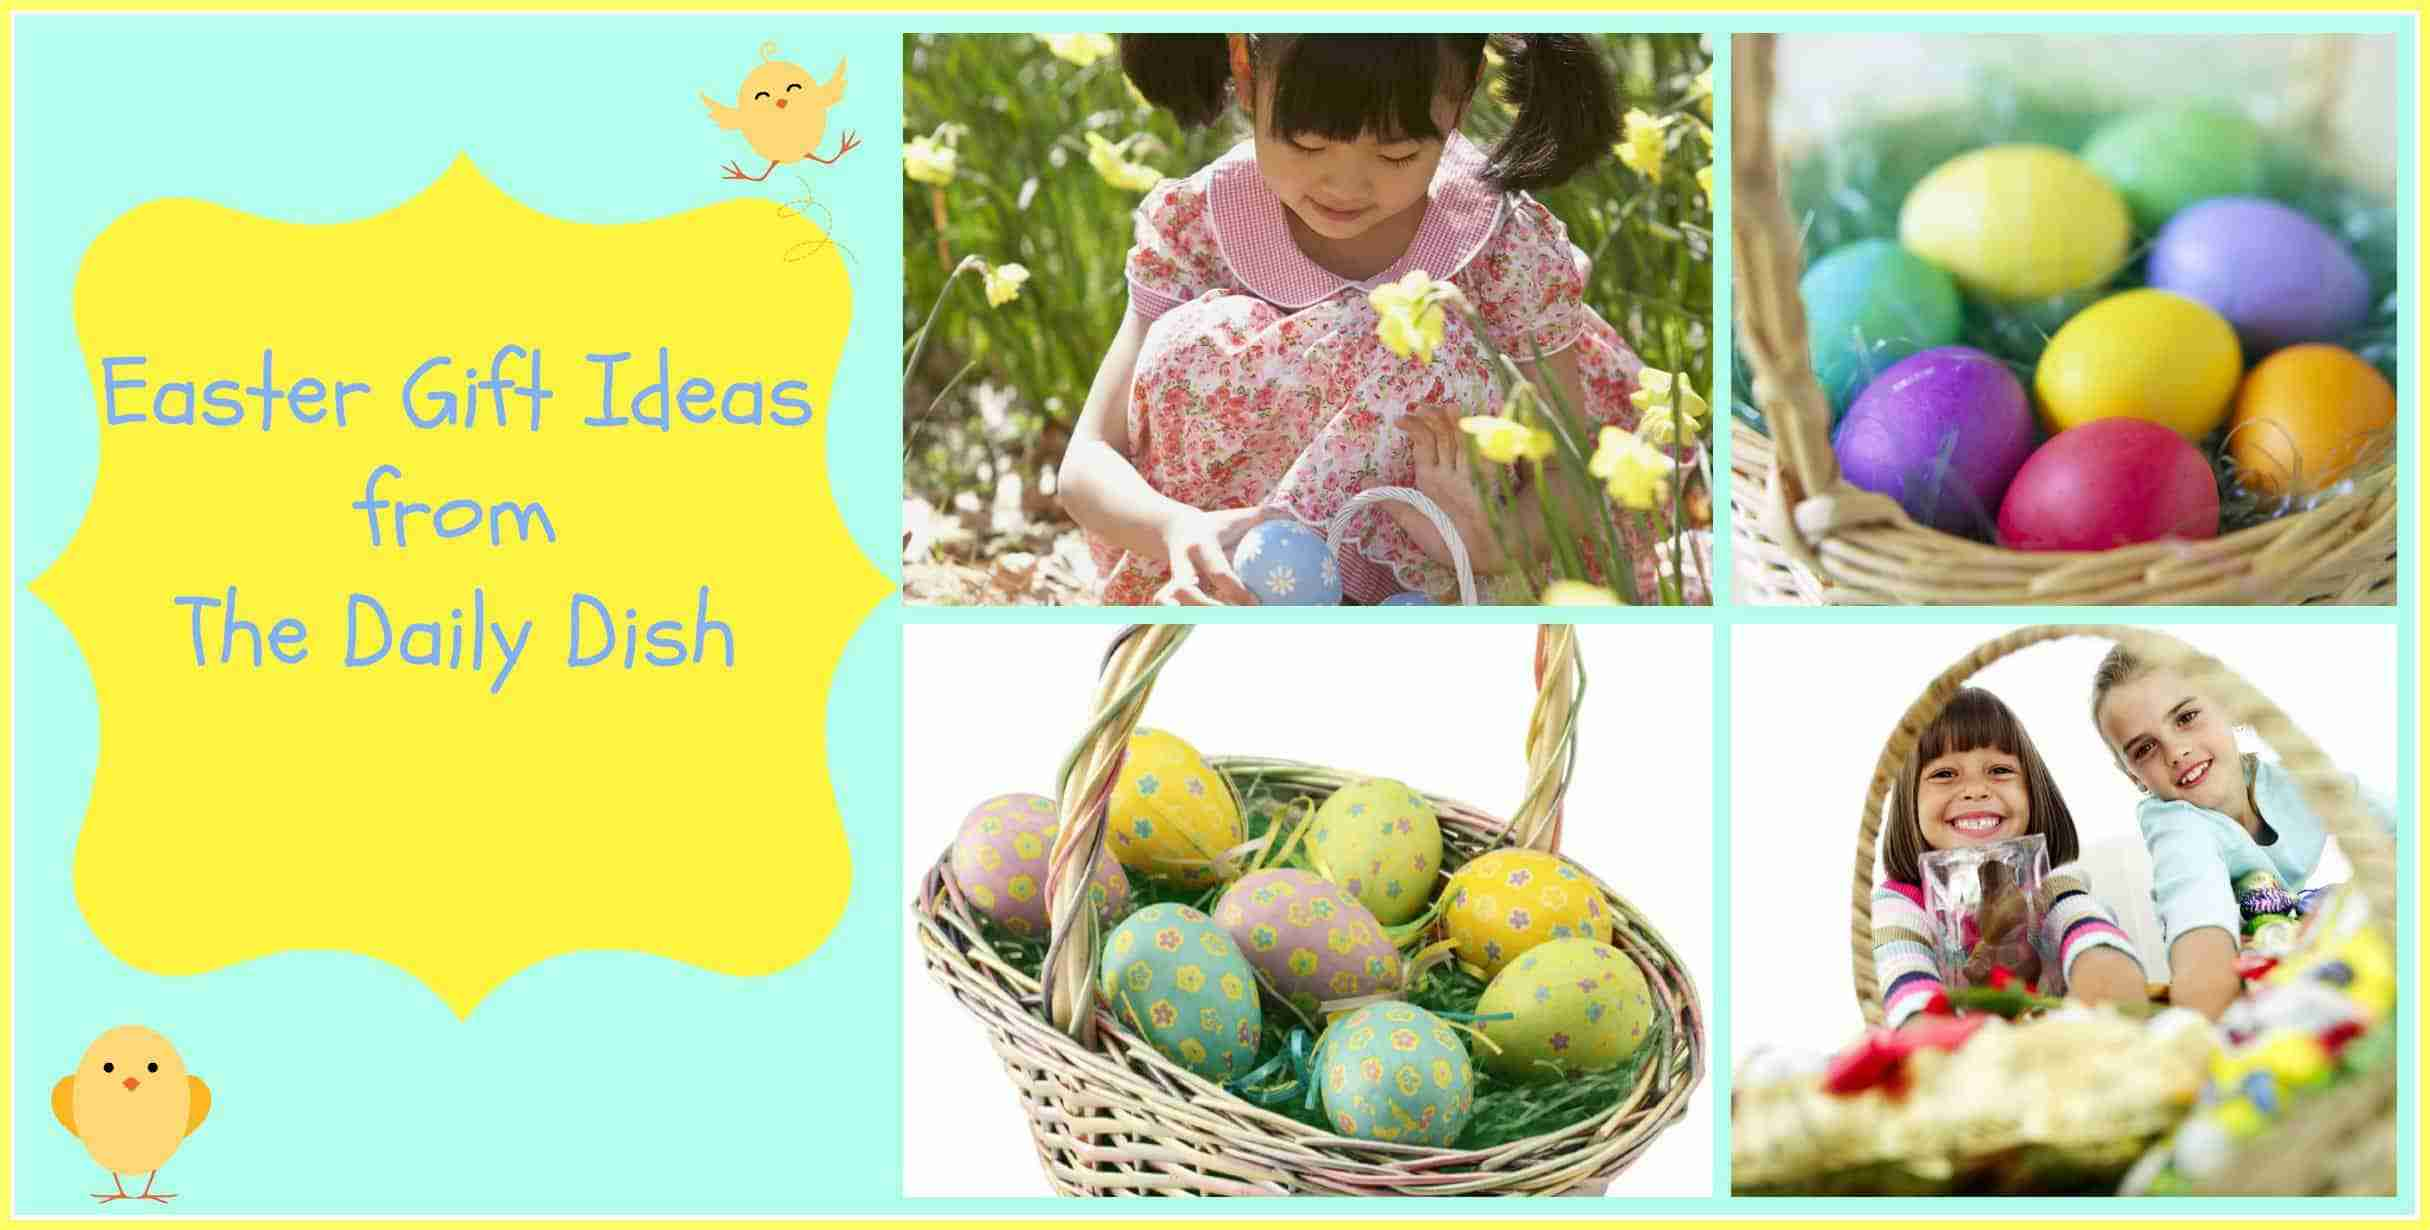 Easter gift ideas for kids daily dish magazine recipes easter gift ideas for kids daily dish magazine recipes travel crafts negle Choice Image